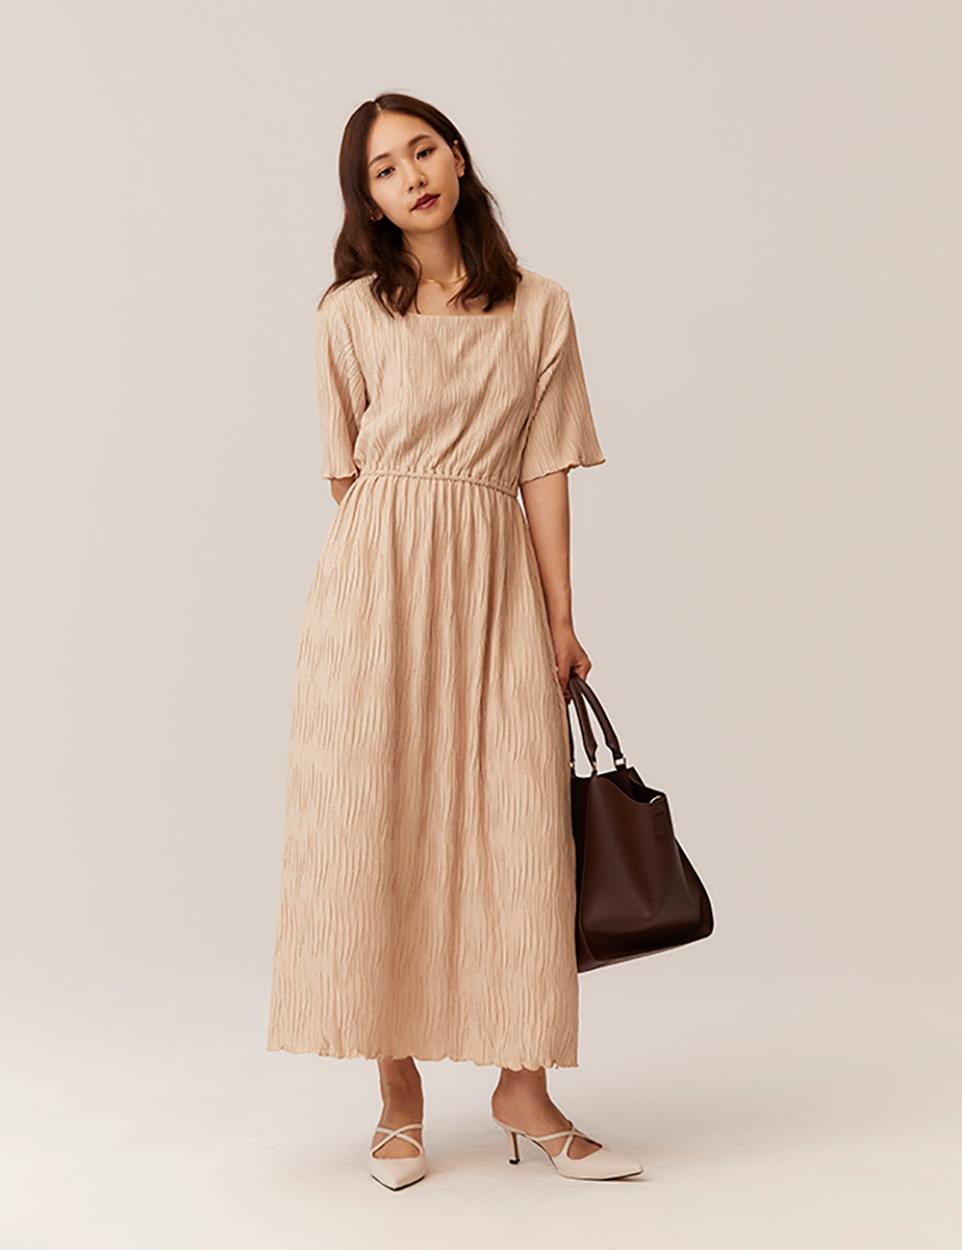 Natural square dress